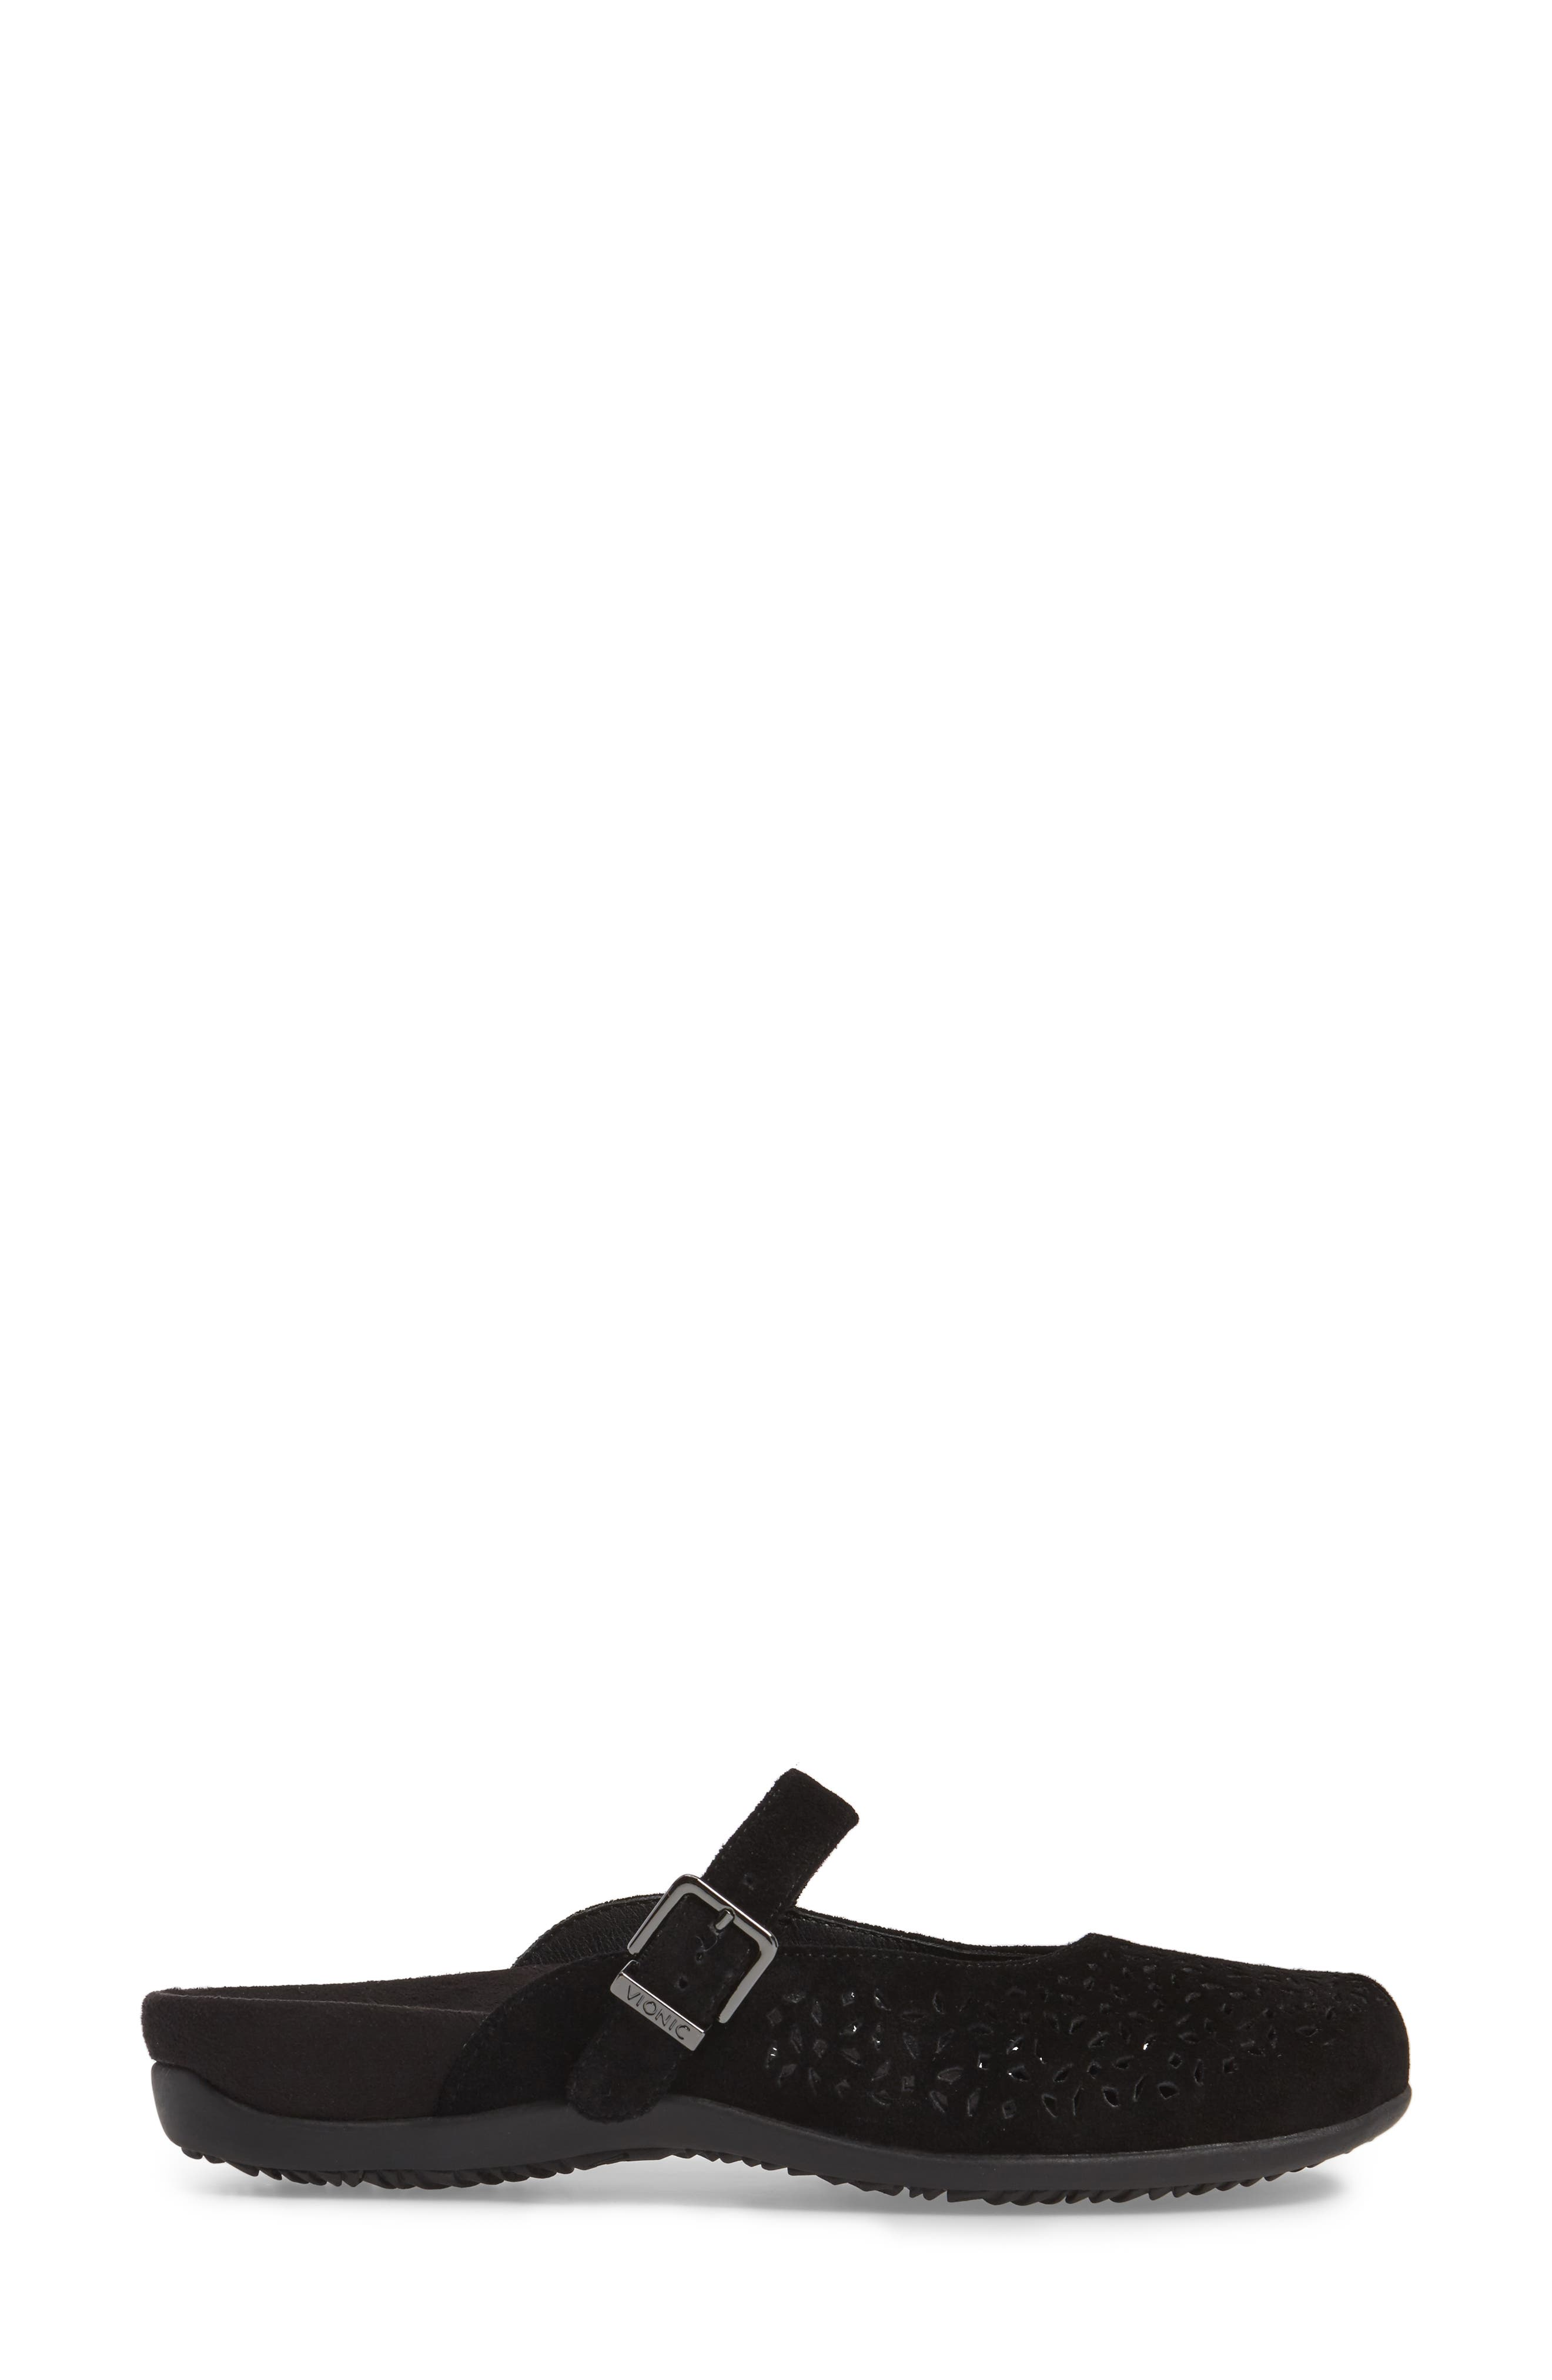 Rest Lidia Perforated Mary Jane Mule,                             Alternate thumbnail 3, color,                             BLACK SUEDE